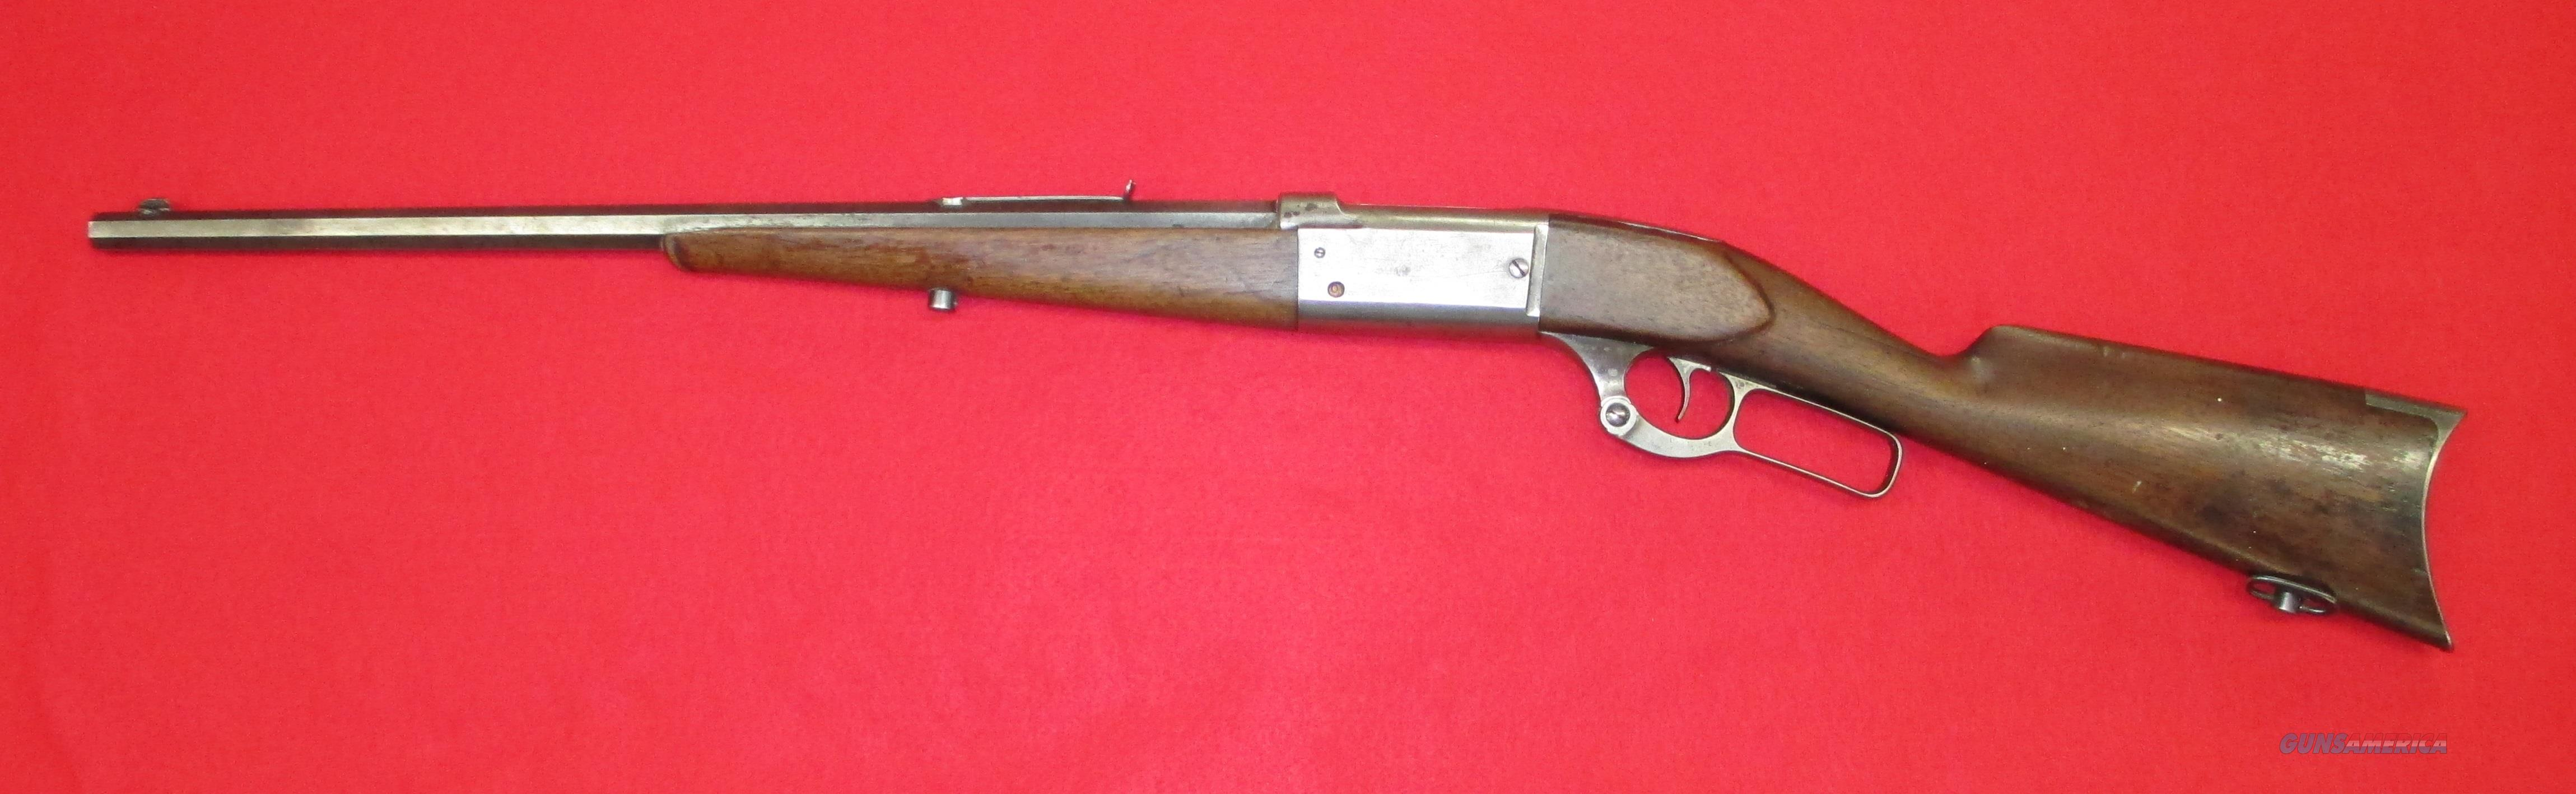 Savage 1899, .303 Savage  Guns > Rifles > Savage Rifles > Model 95/99 Family